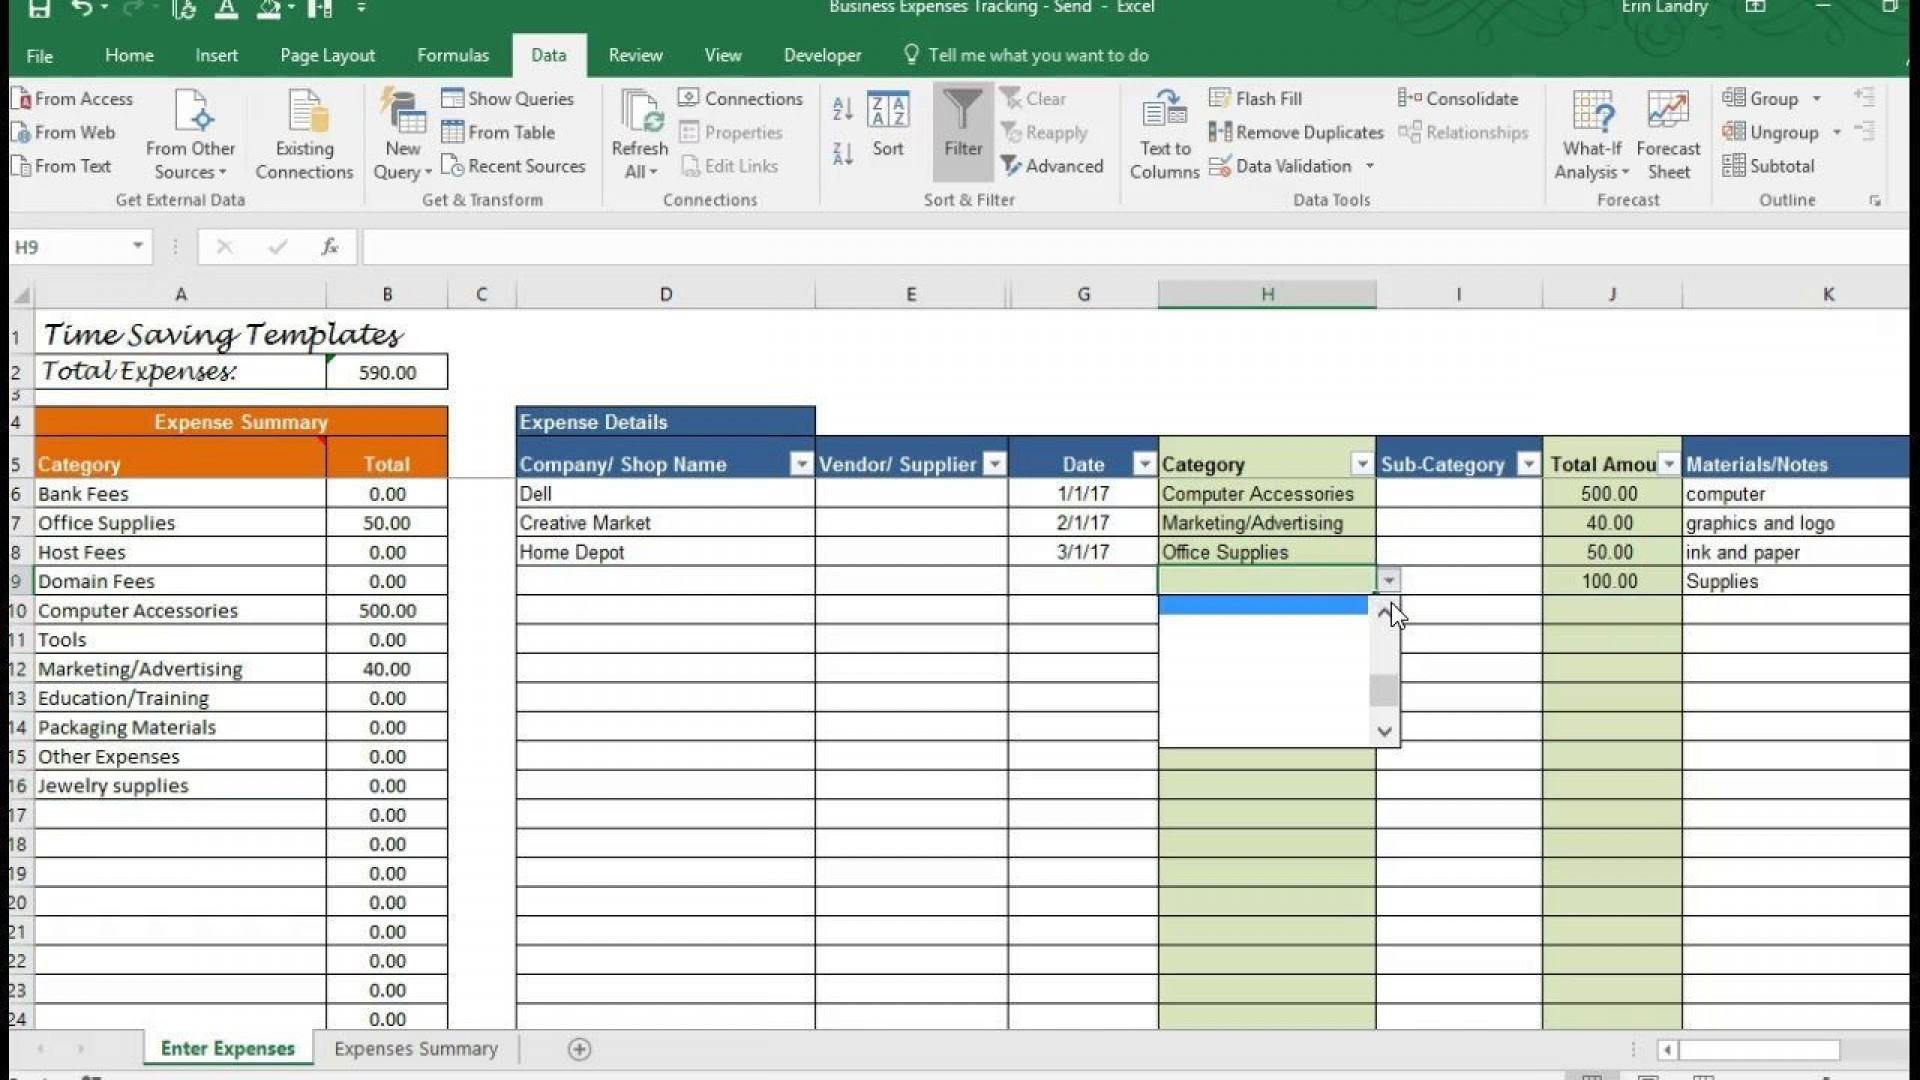 005 Surprising Excel Busines Expense Tracking Template Highest Clarity 1920